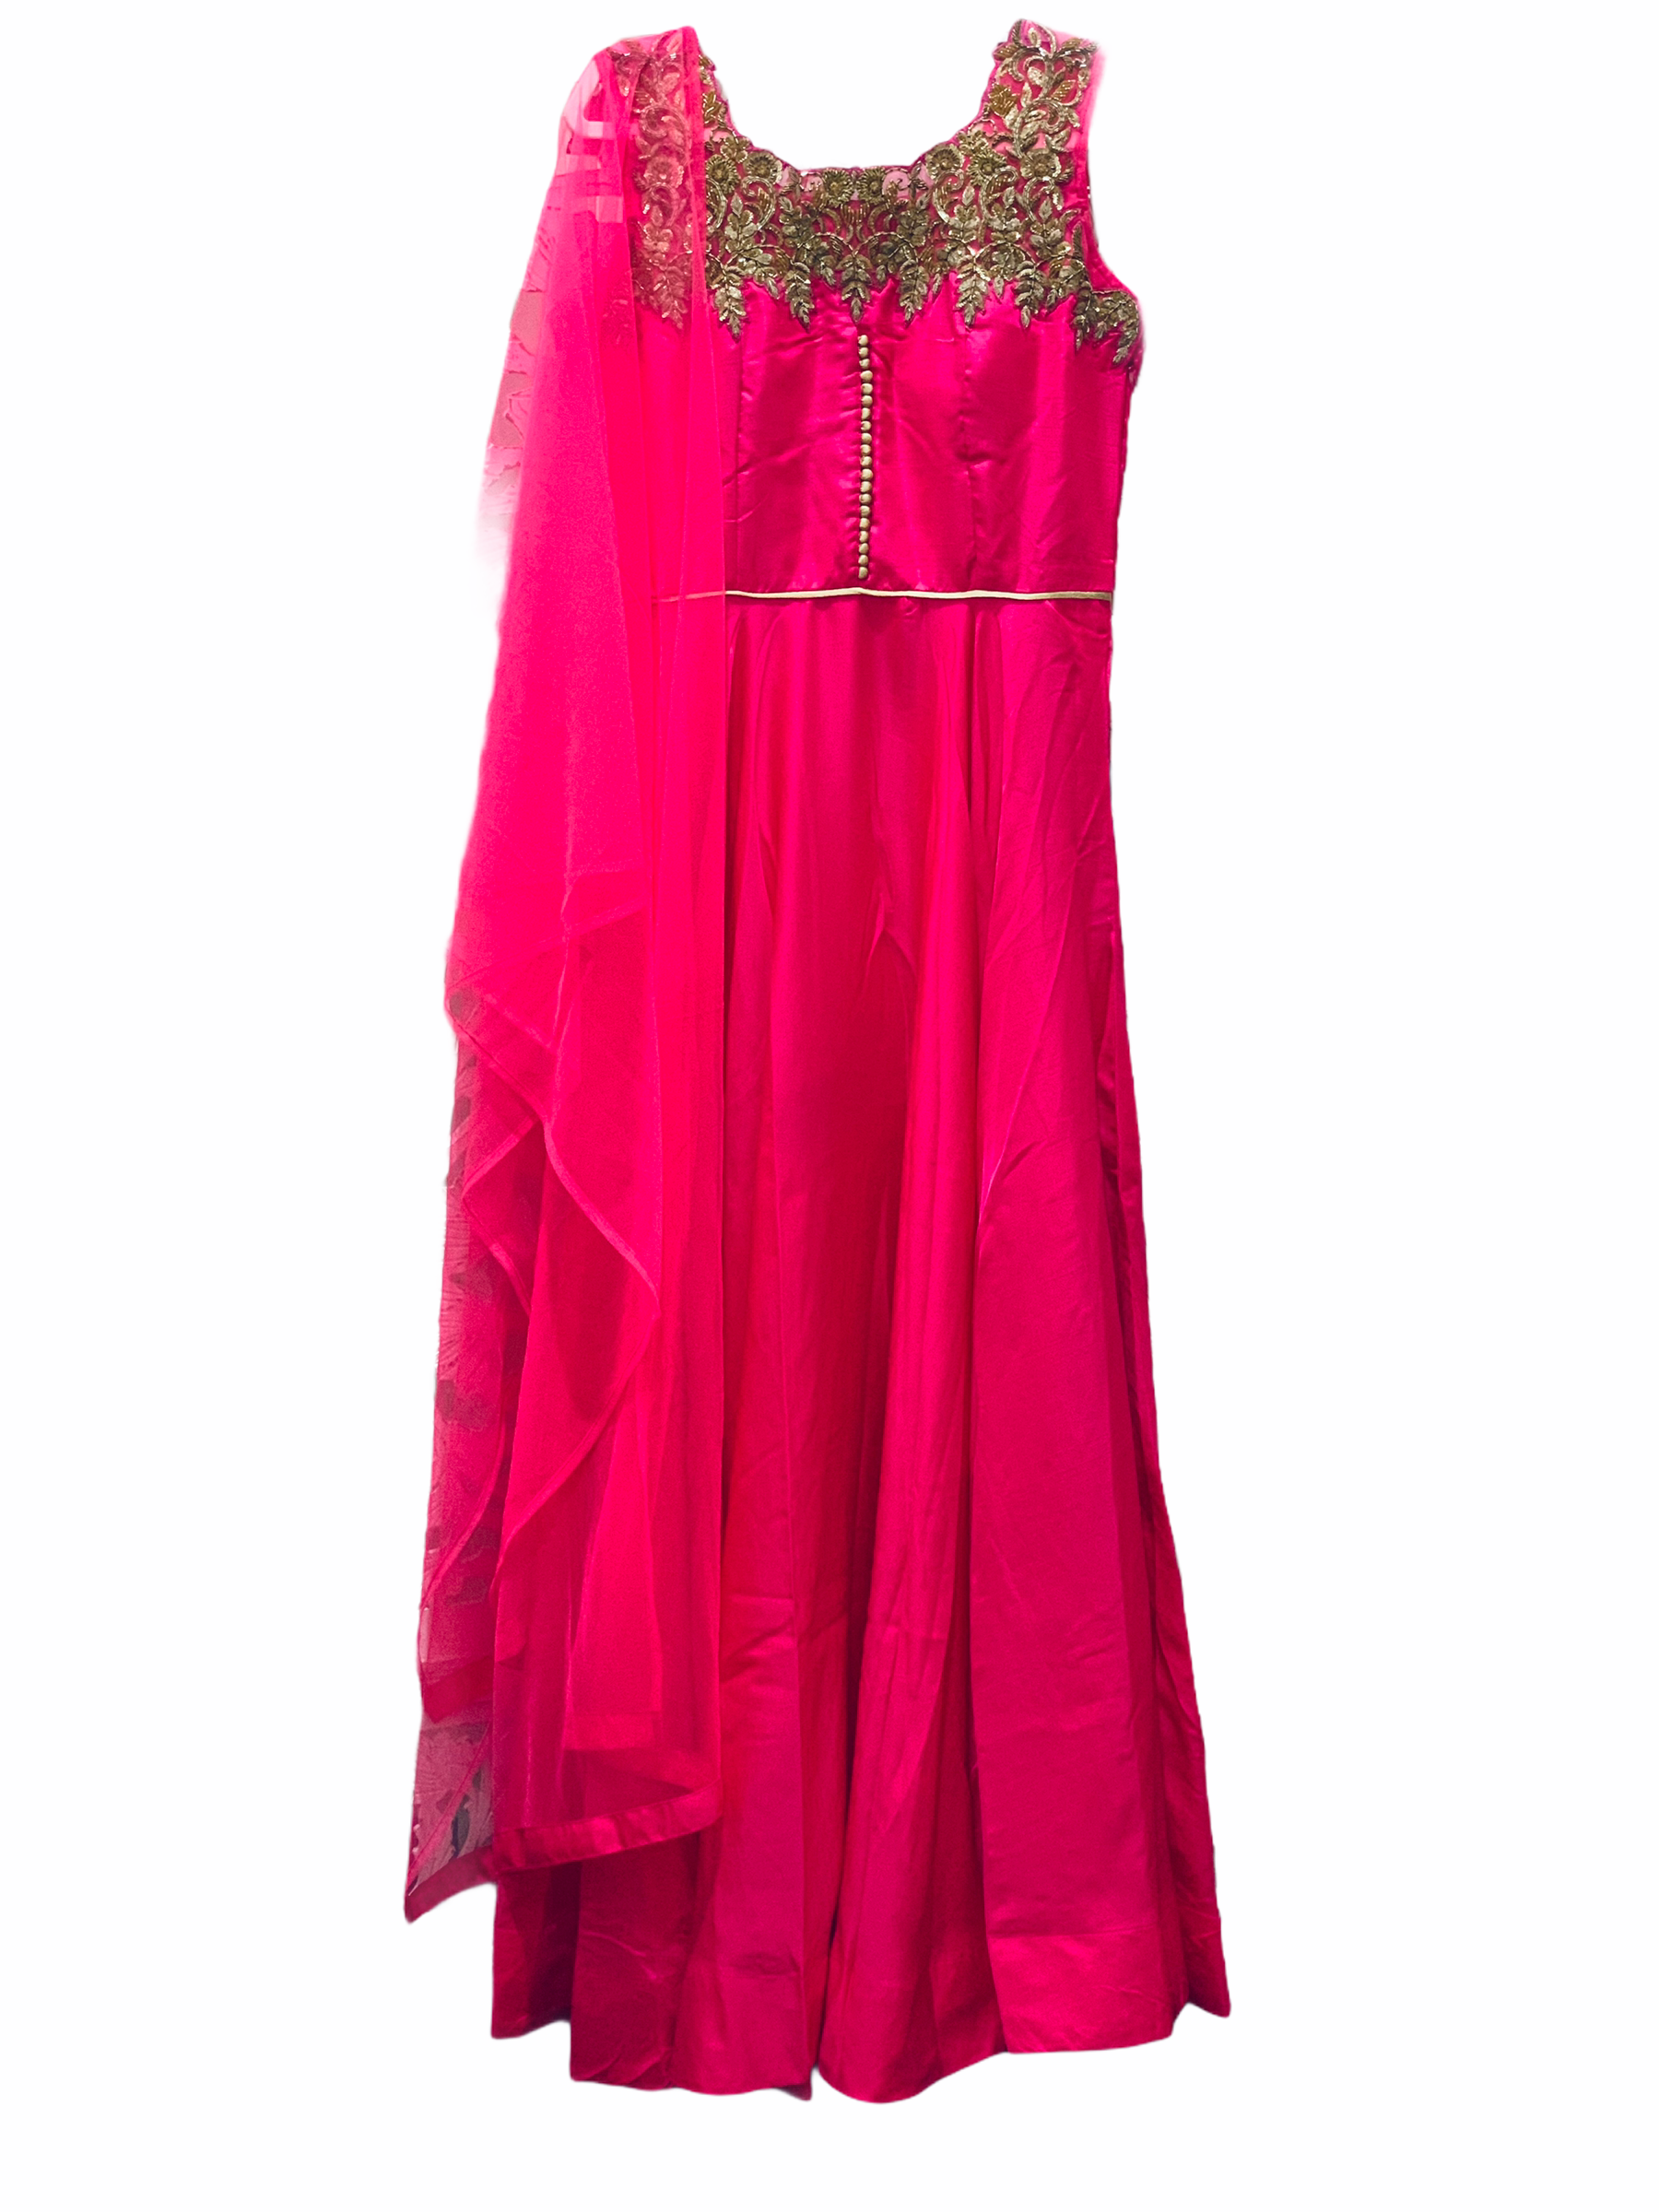 Pink and Gold Anarkali Gown - Sakkhi Style